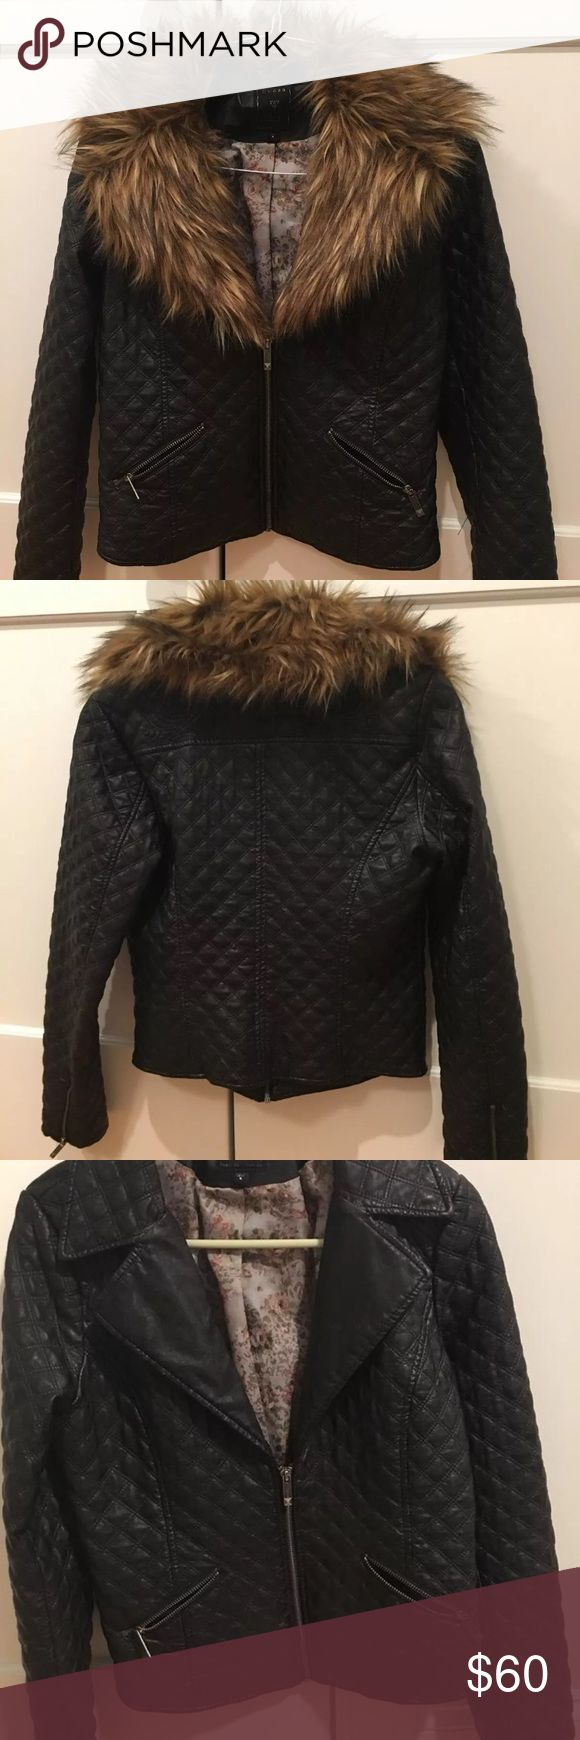 faux leather jacket Faux leather jacket with optional faux fur. Guess Jackets & Coats